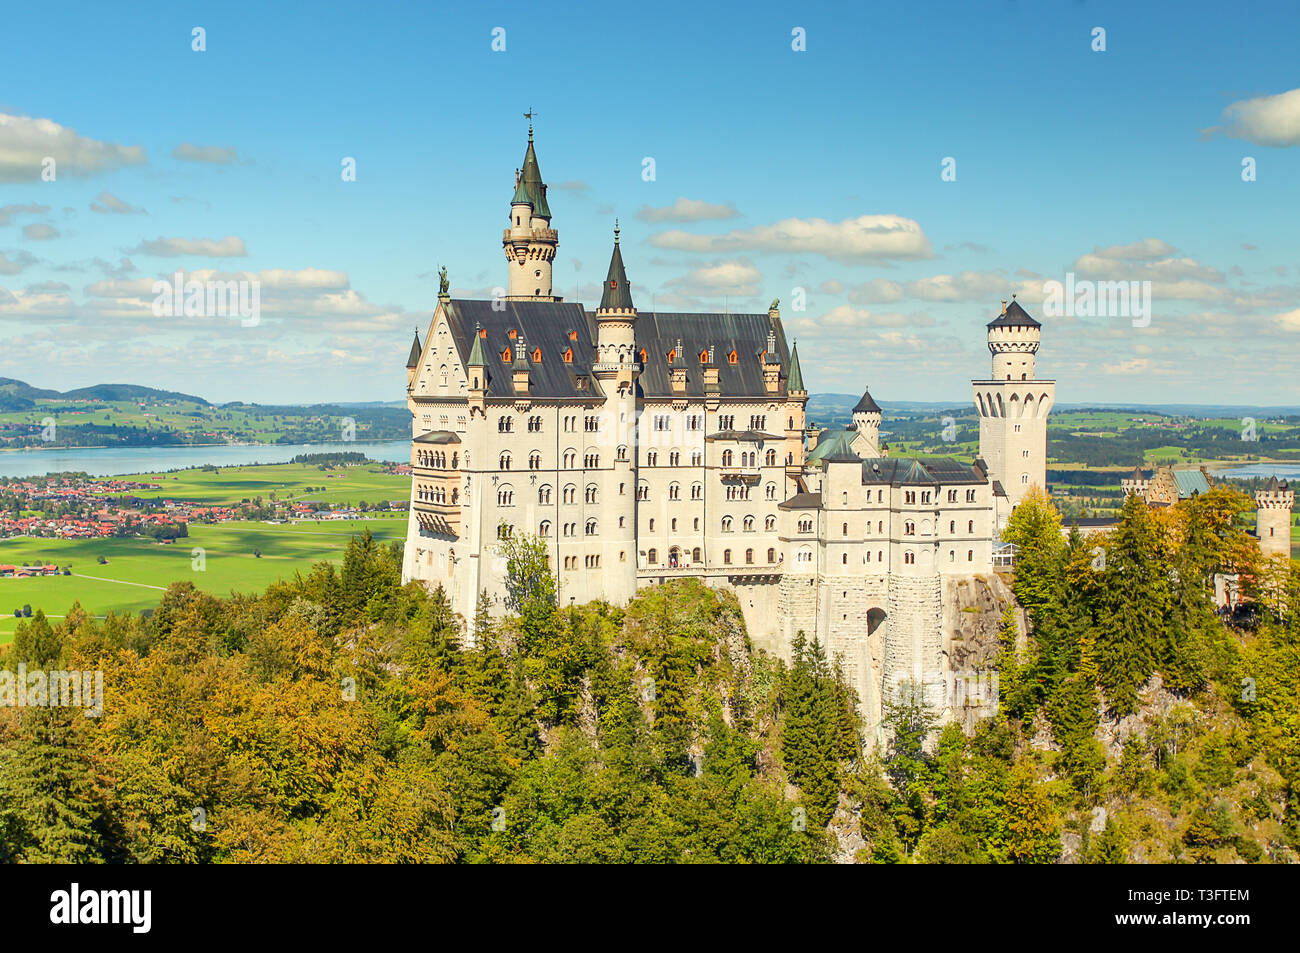 Beautiful view of world-famous Neuschwanstein Castle, the 19th century Romanesque Revival palace built for King Ludwig II, with scenic mountain landsc - Stock Image